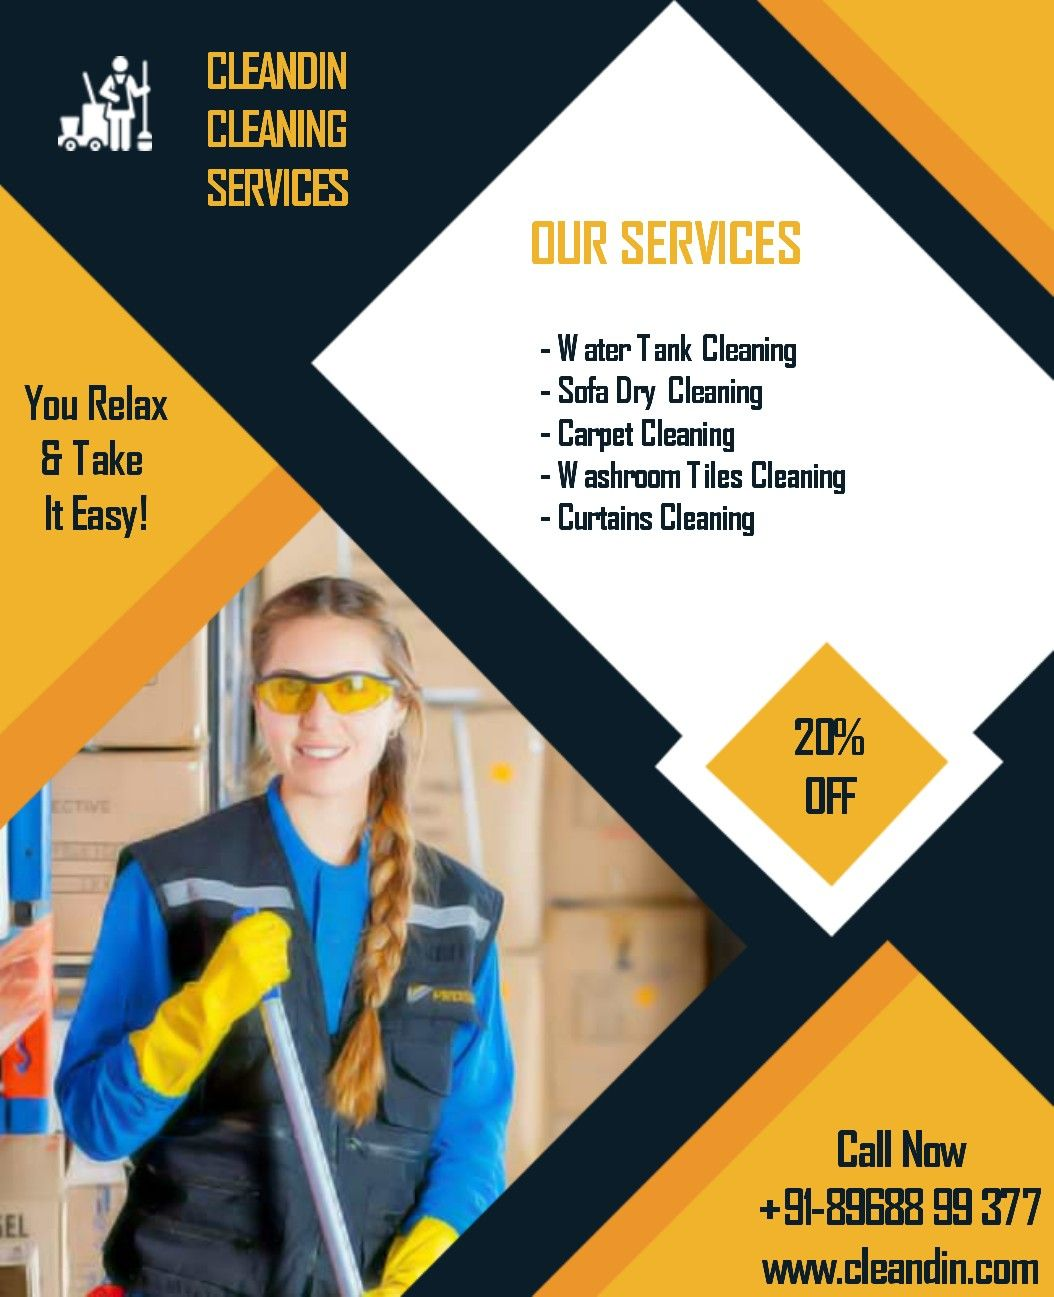 Cleandin Best Water Tank Cleaners In Chandigarh Mohali